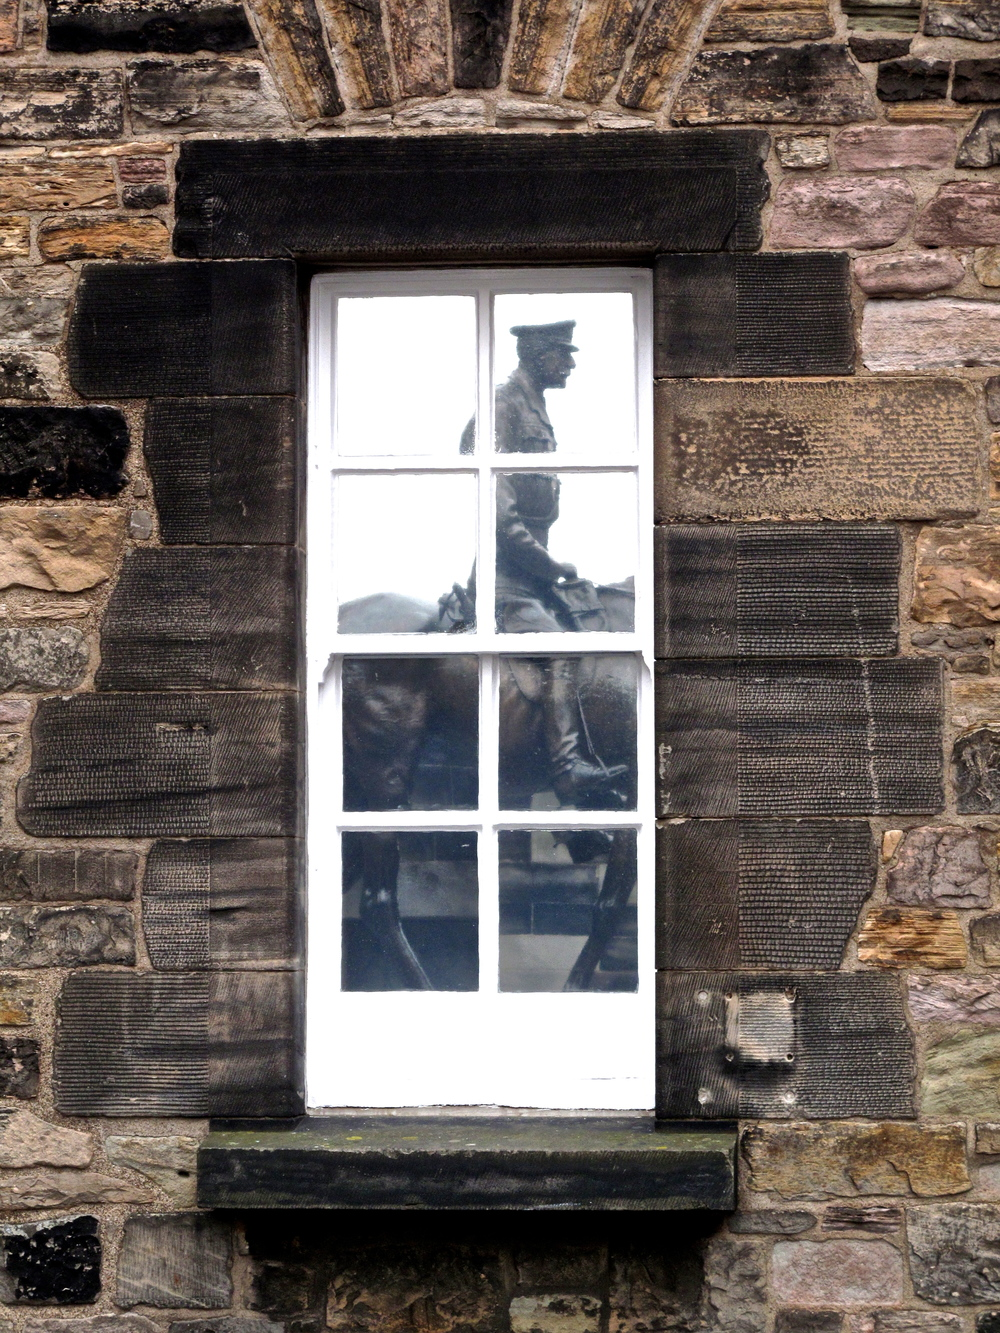 Window reflection of an equestrian statue in Edinburgh Castle.